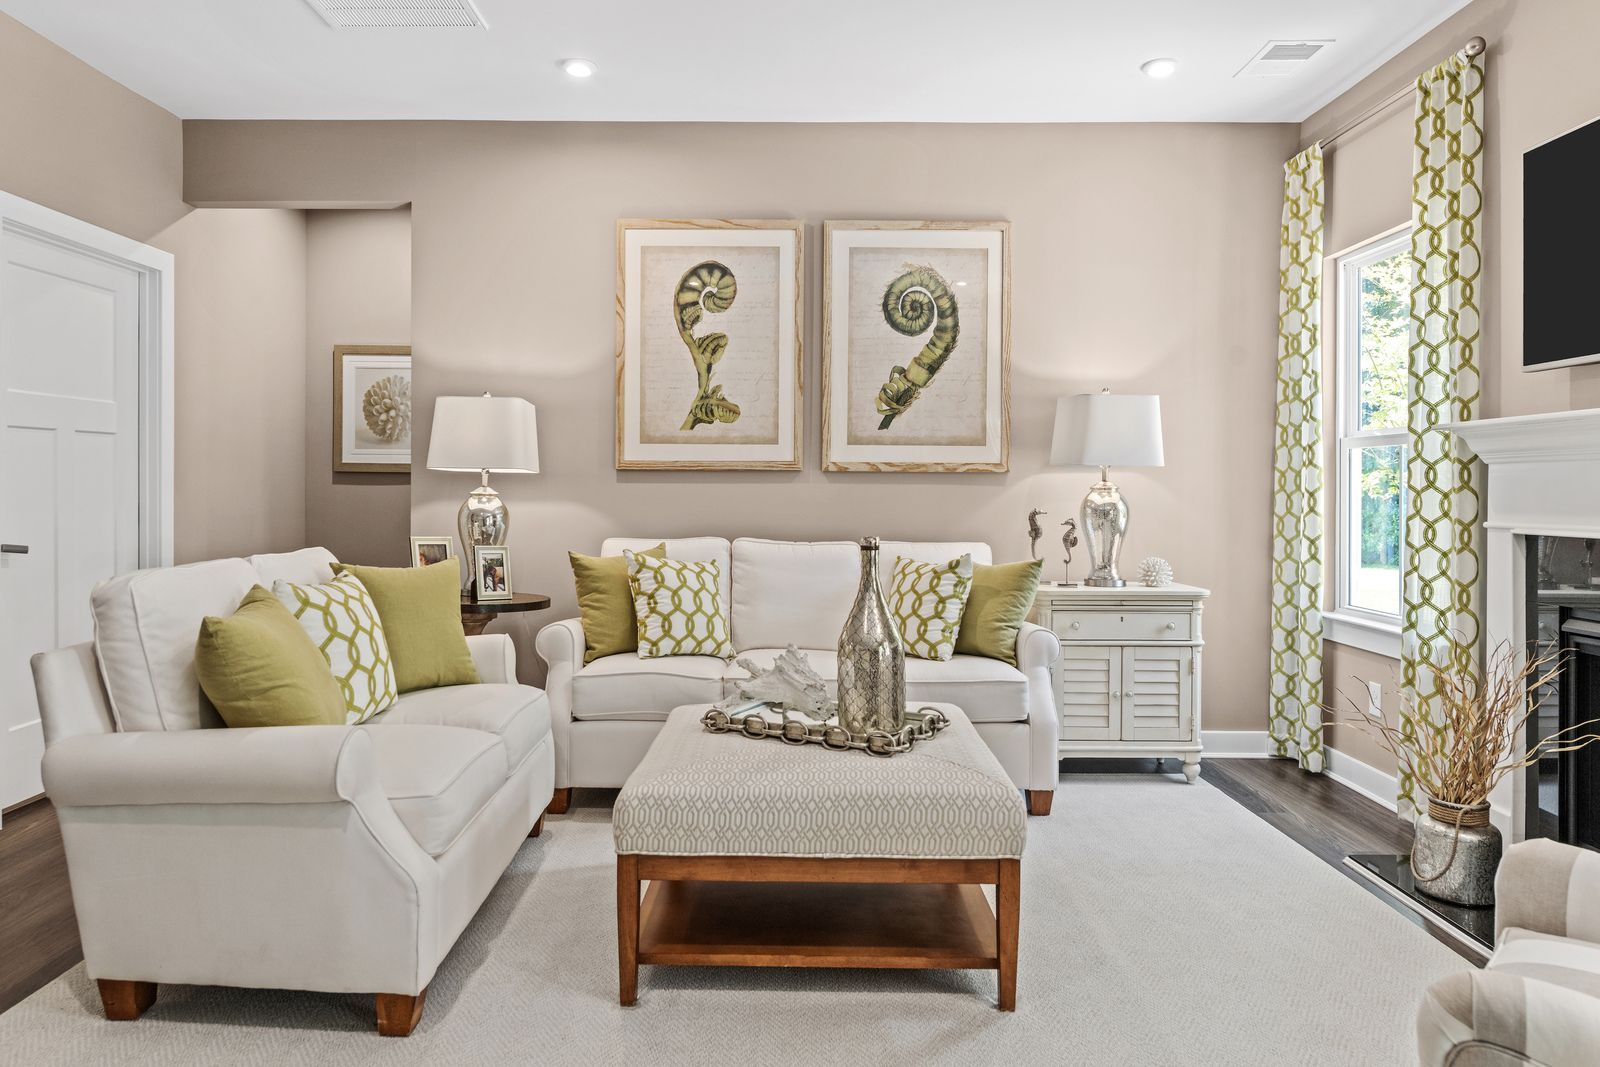 Living Area featured in the Alberti 2 Story By Ryan Homes in Chicago, IL